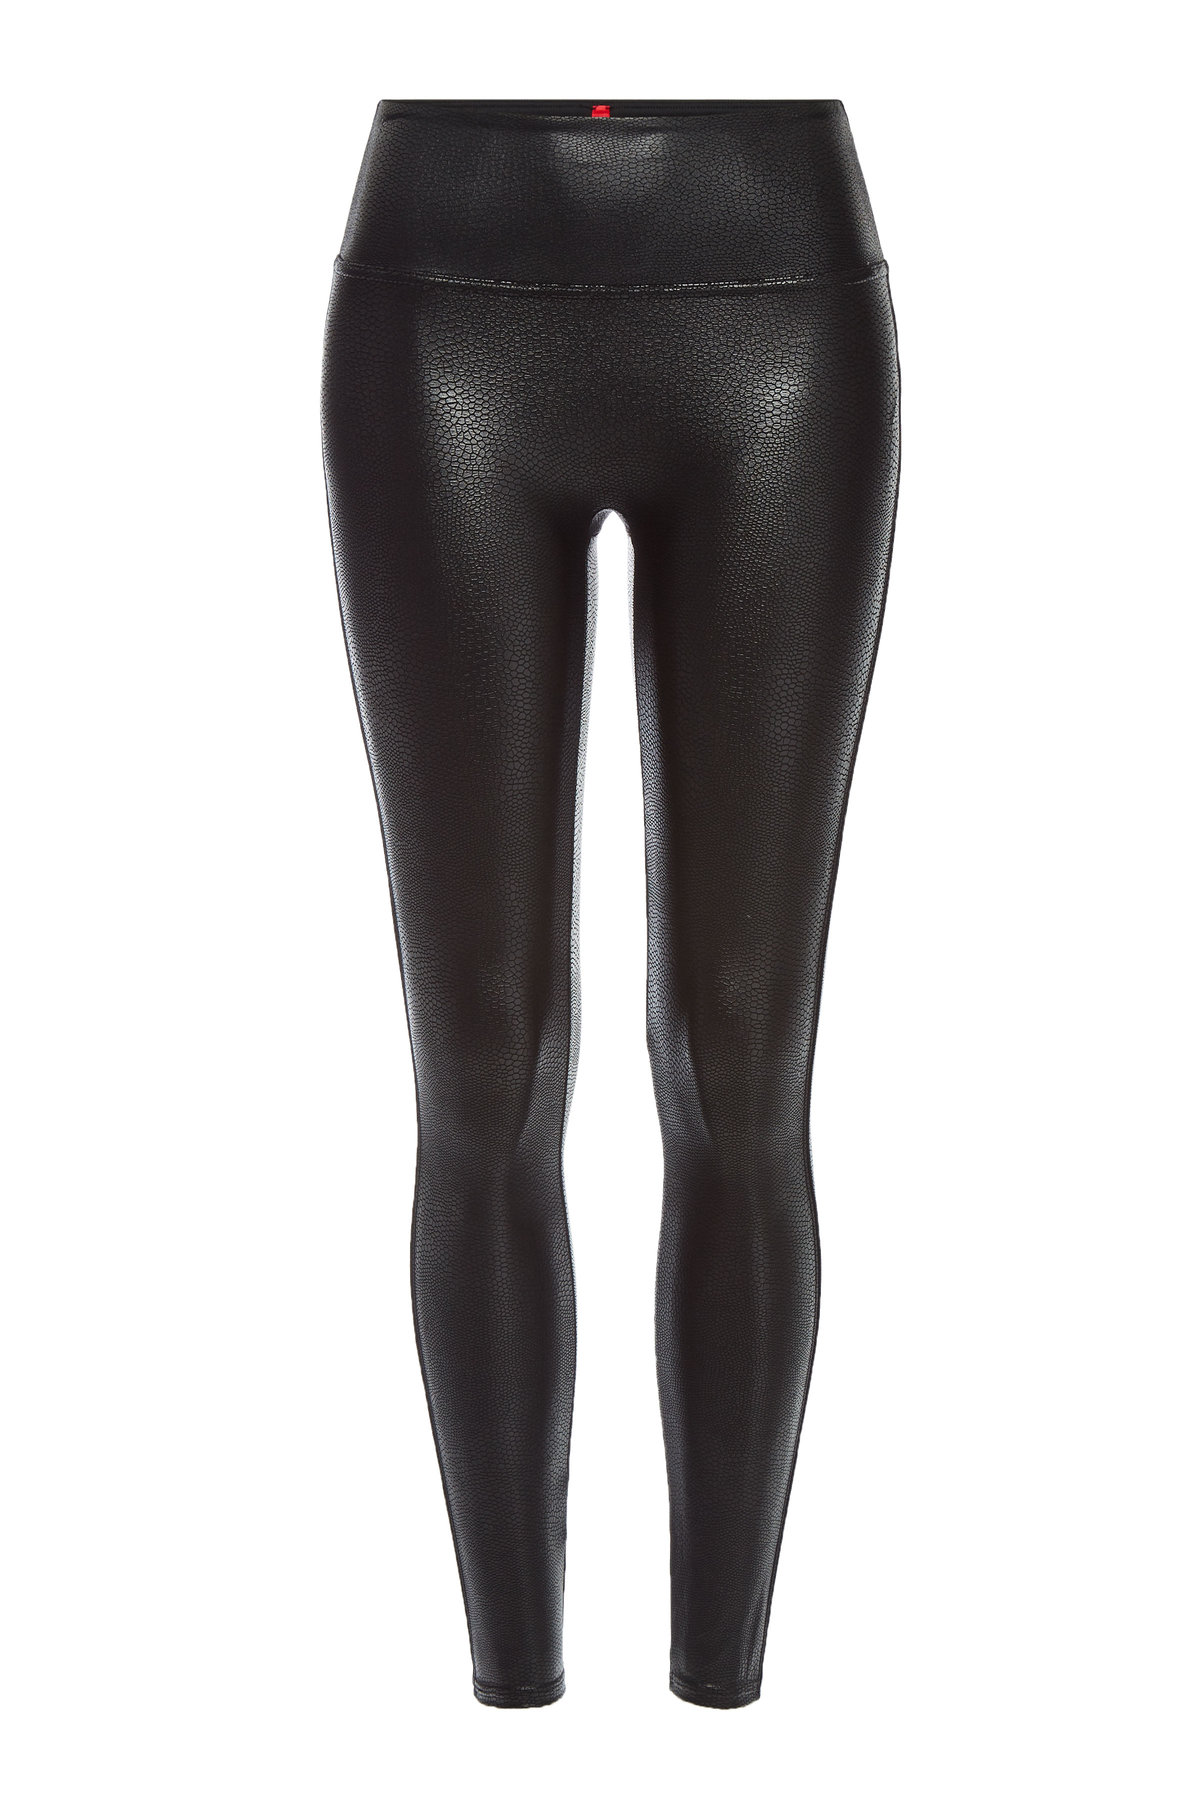 d25f7c860c Spanx Faux Leather Leggings In Black